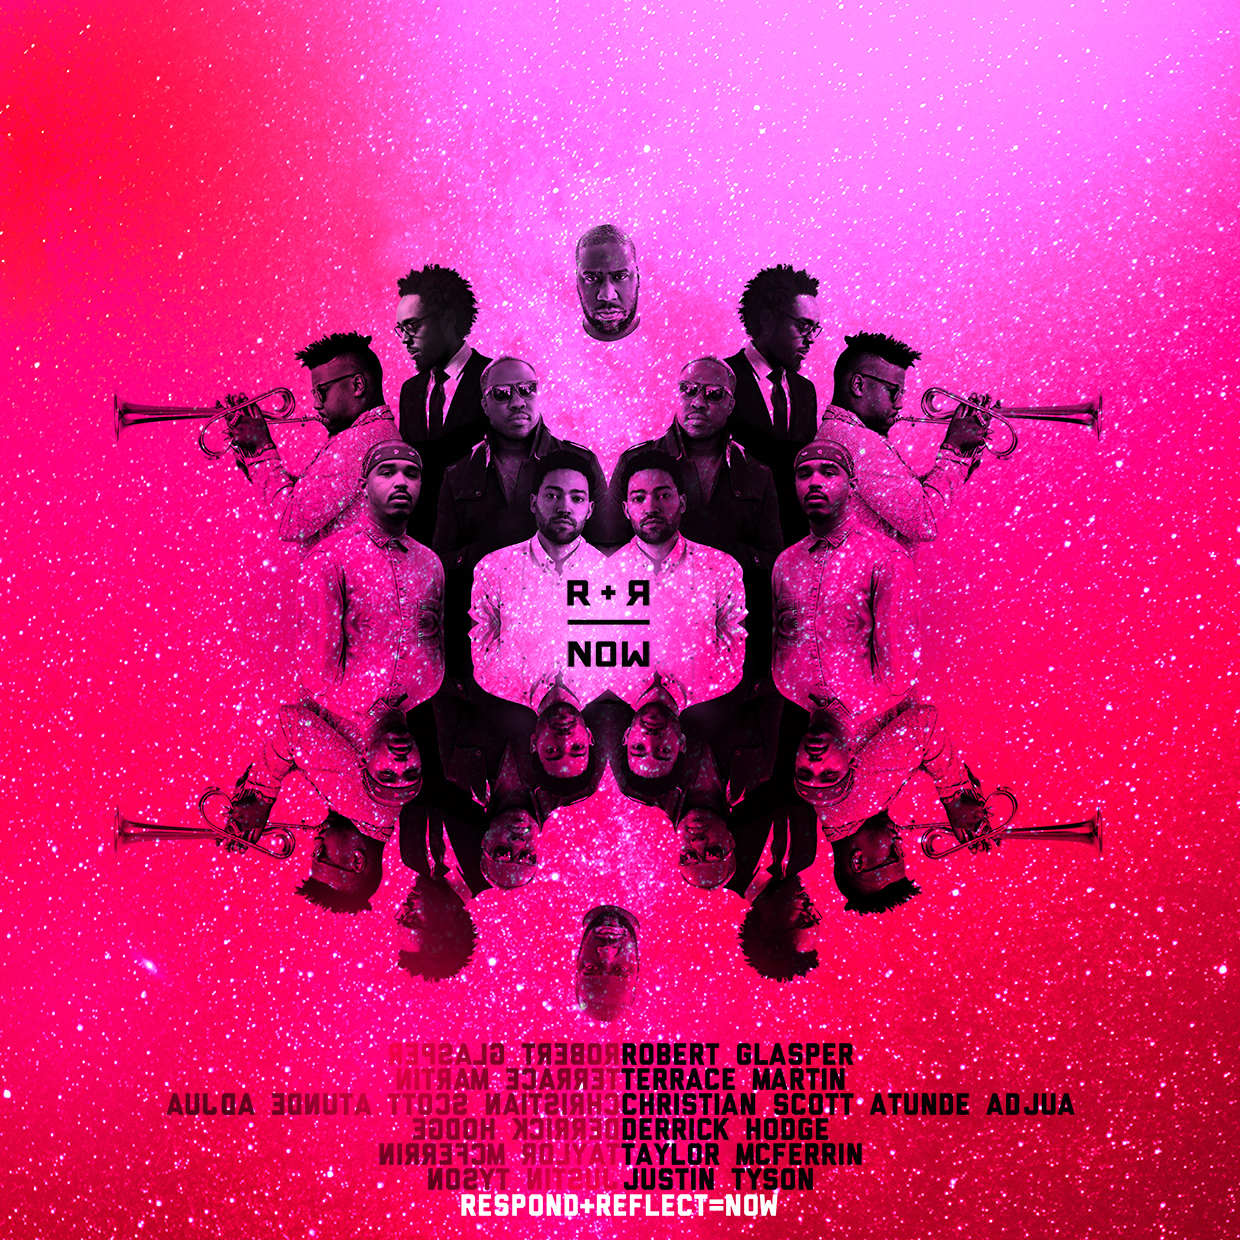 Robert Glasper and Terrace Martin announce new all-star project